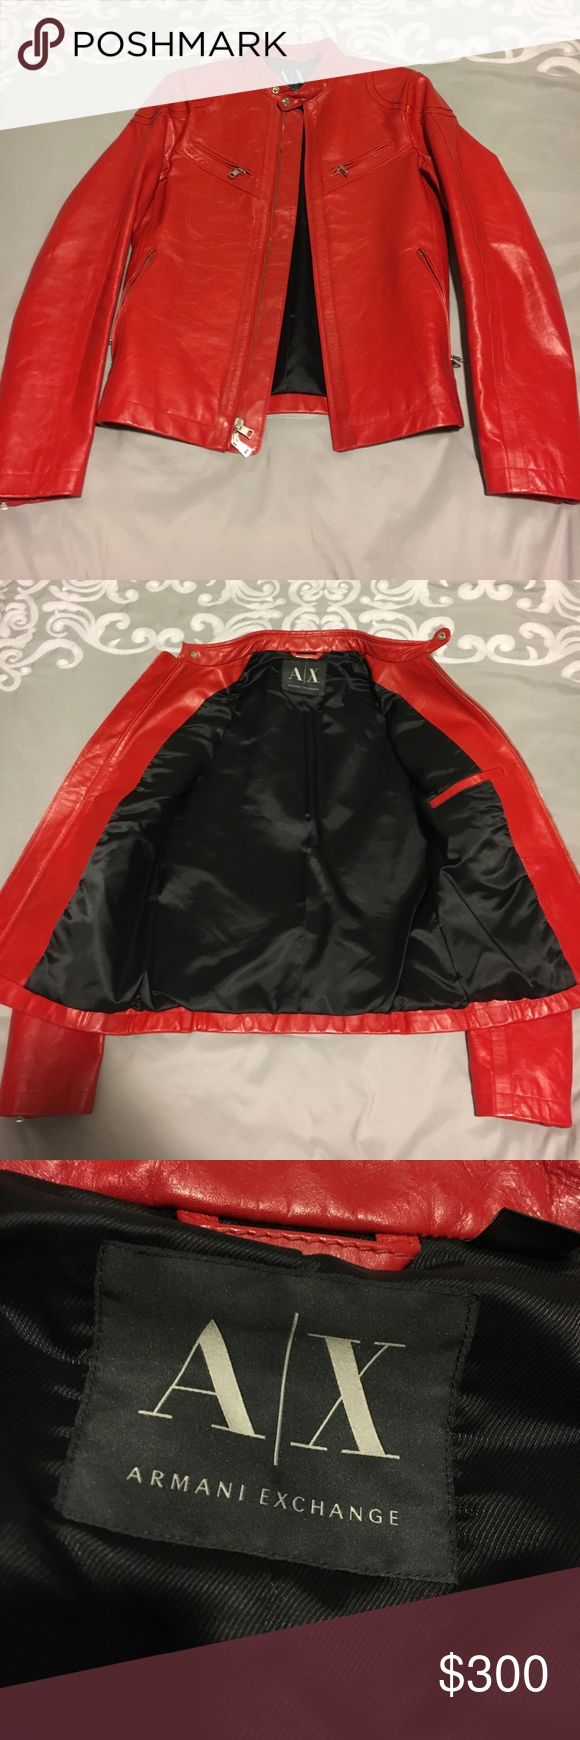 Armani Exchange Leather jacket Armani Exchange genuine cowhide leather in bright red! Thick leather in a beautiful true red color. Very soft black lining. This jacket has only been worn a handful of special occasions and is in near perfect condition! AX jackets fit very snug. This is a small. A/X Armani Exchange Jackets & Coats Performance Jackets